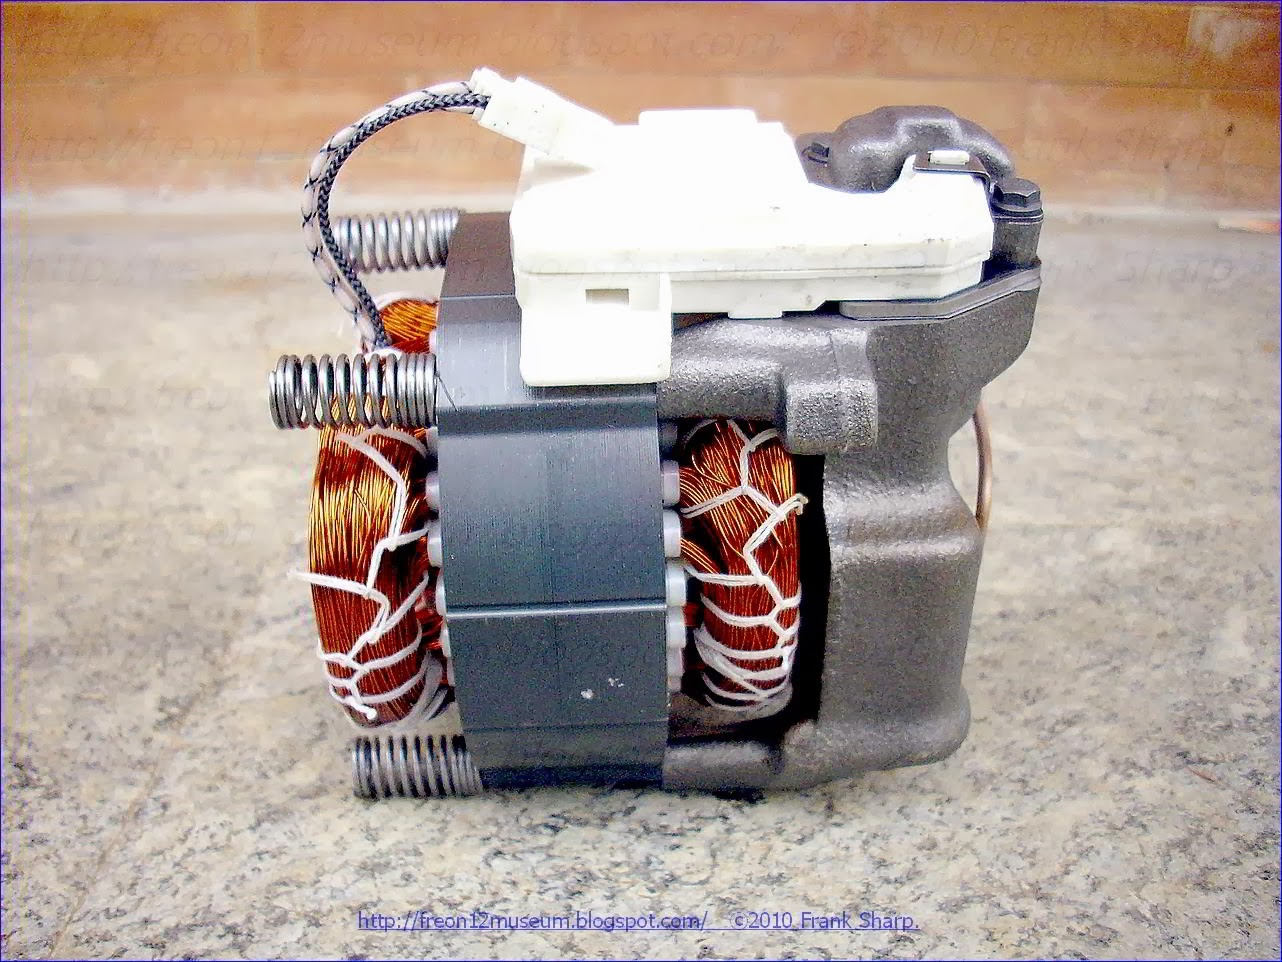 Under The Ice Rex Electrolux Ir023s Year 1990 Fire Fusible Link Shut Off Valve Likewise Hoover Vacuum Cleaner Motor Same Natural Frequency As An Acoustic Mode Of Cavity Two New Coupled Modes Are Produced Whose Frequencies Disposed On Sides